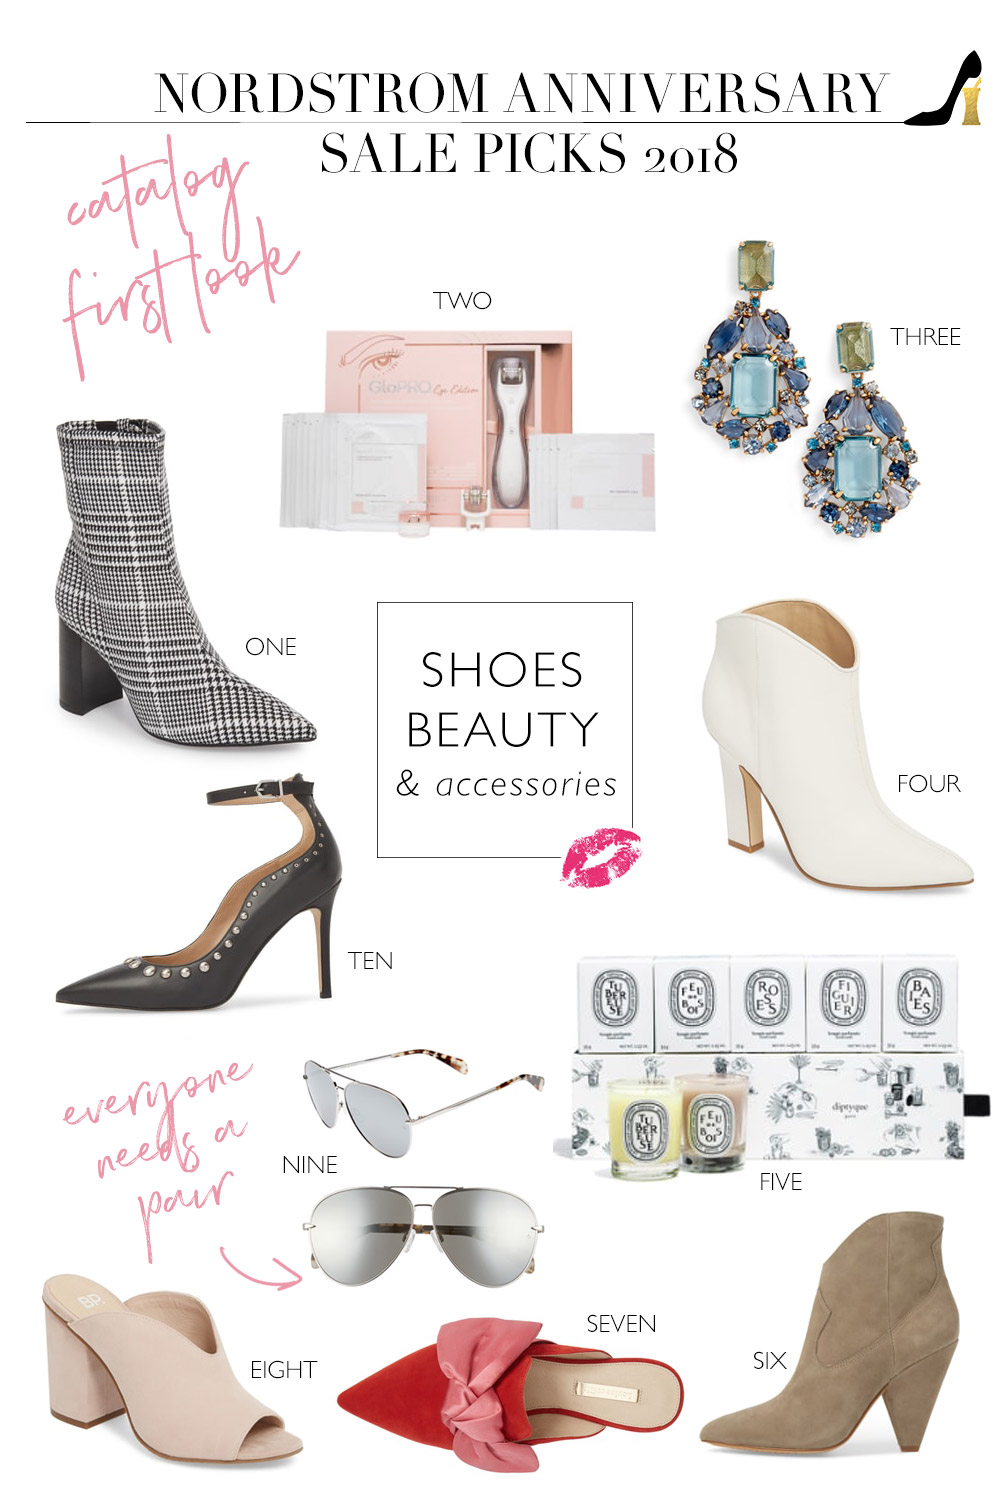 b722b2bced45 Nordstrom-anniversary-sale-2018-catalog-first-look-picks-SHOES ...